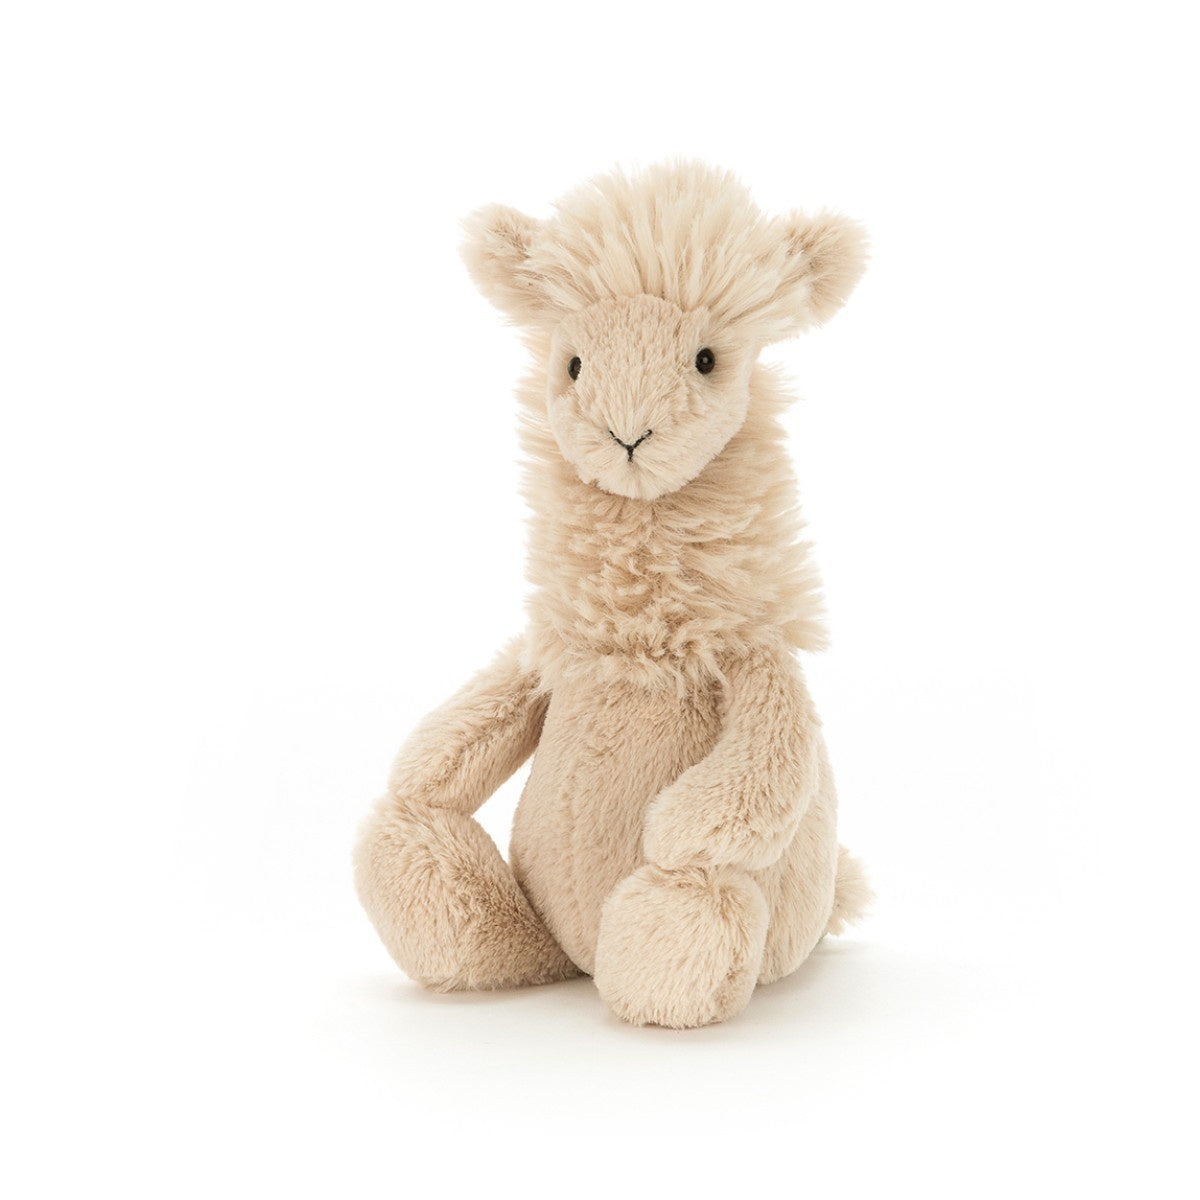 Jellycat Bashful Llama Small Plush - WishBasket